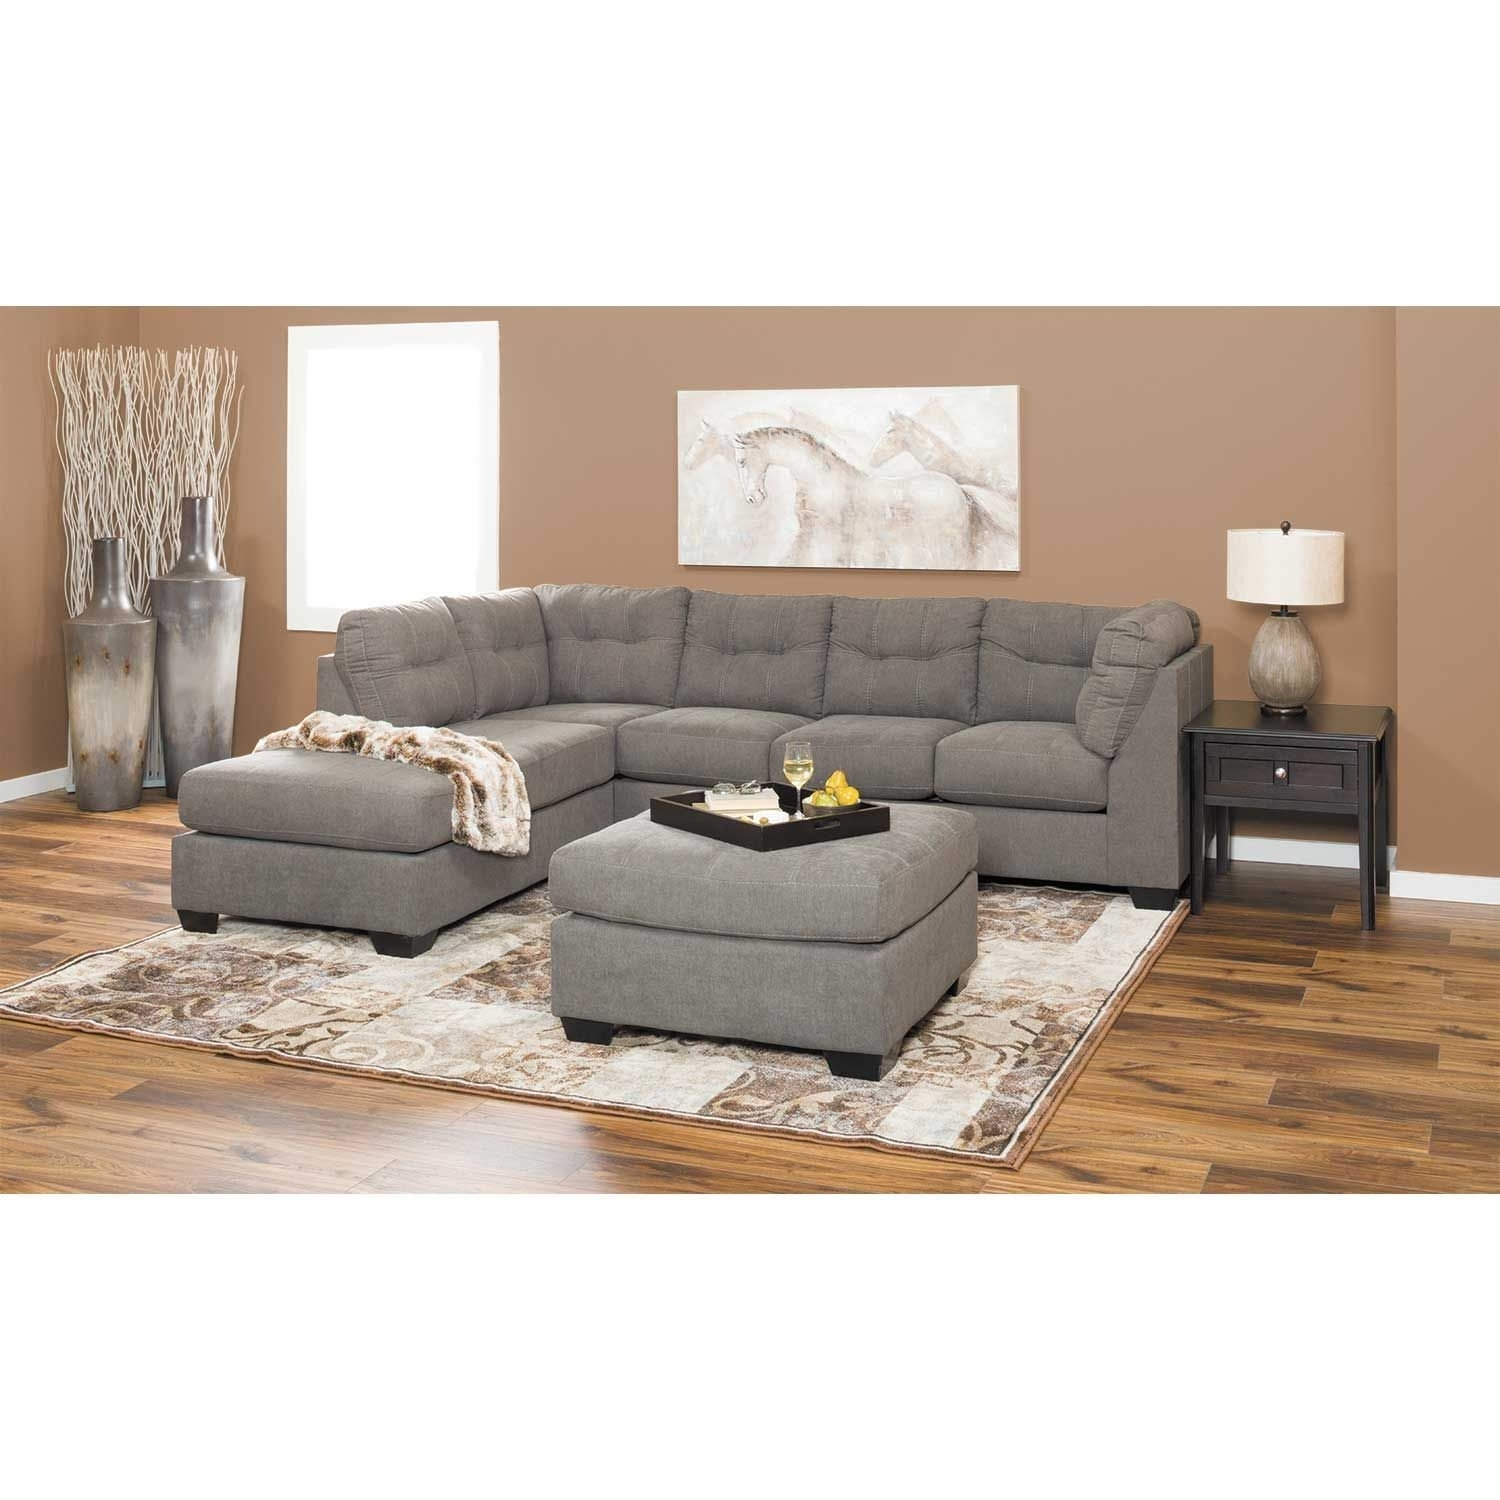 Maier Charcoal 2 Piece Sectional With Laf Chaise | 4520016/67 throughout Arrowmask 2 Piece Sectionals With Sleeper & Left Facing Chaise (Image 17 of 30)